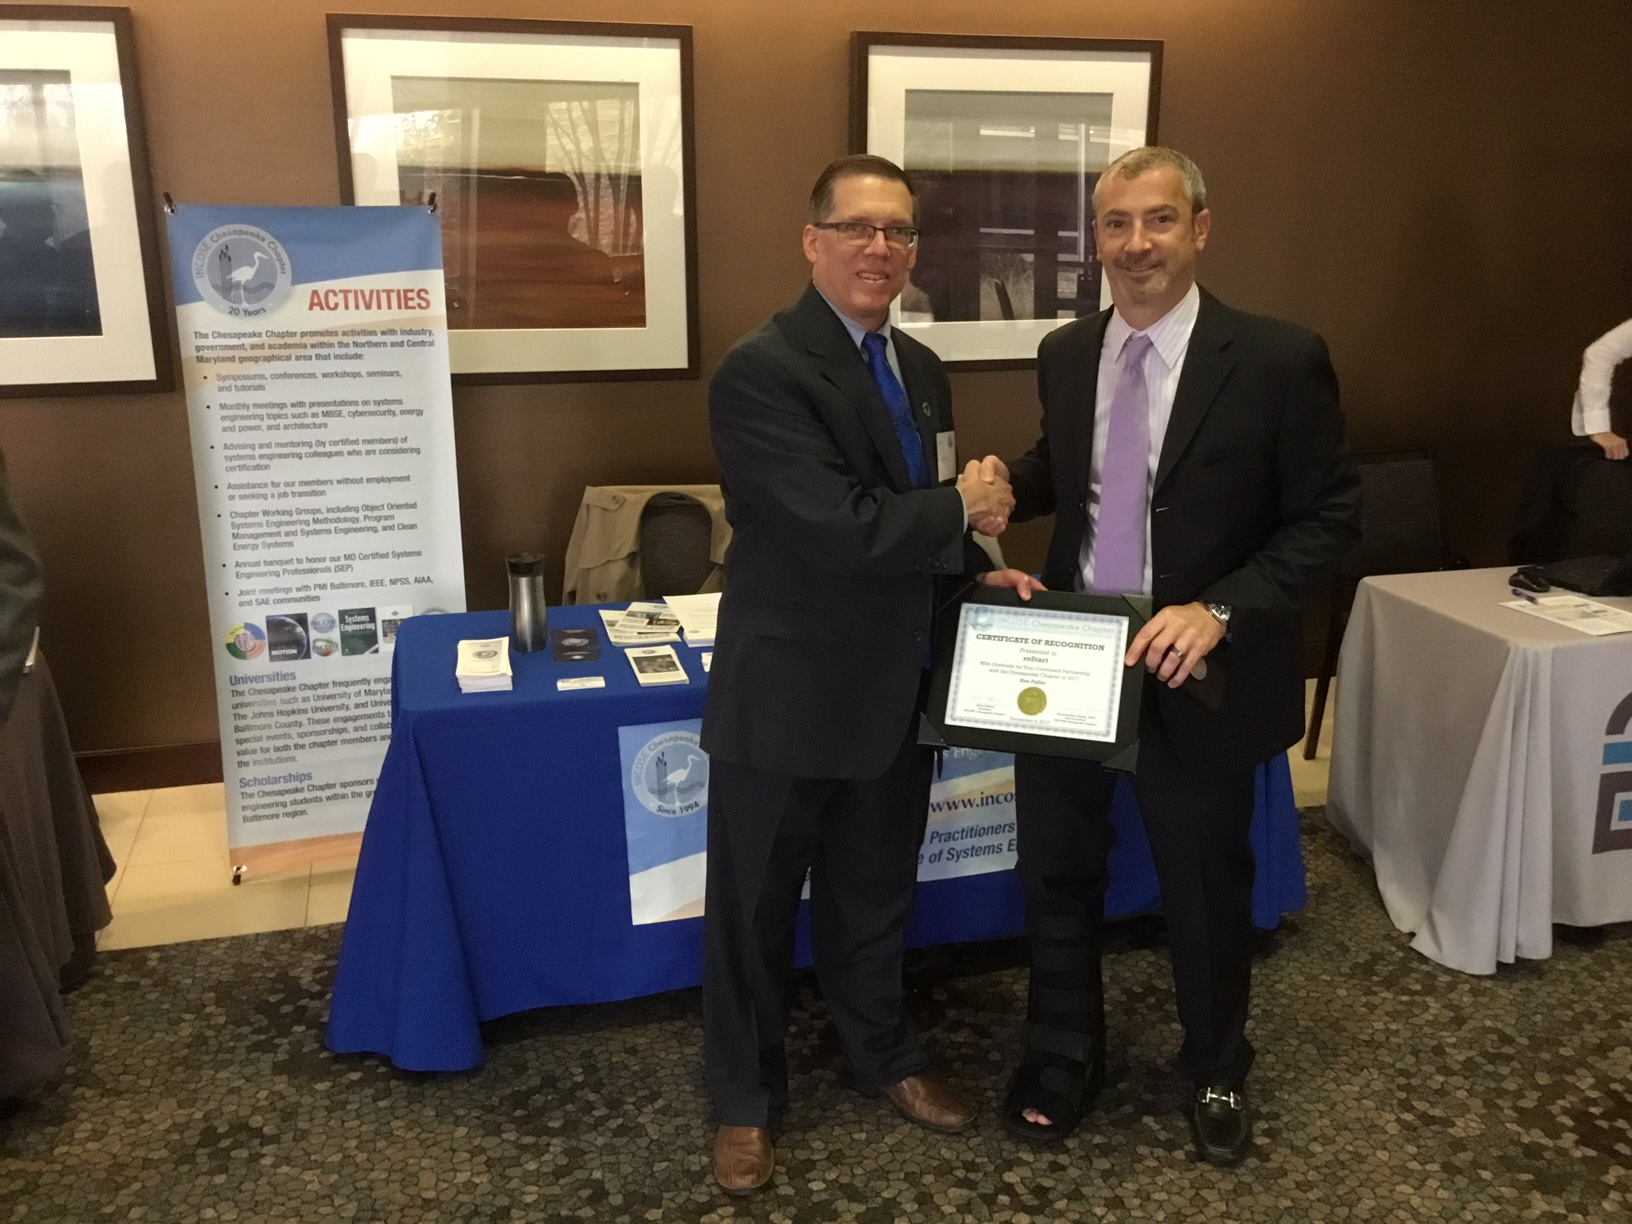 Ken Fuller with Mark Kaczmarek at the January 29, 2018 reStart job fair